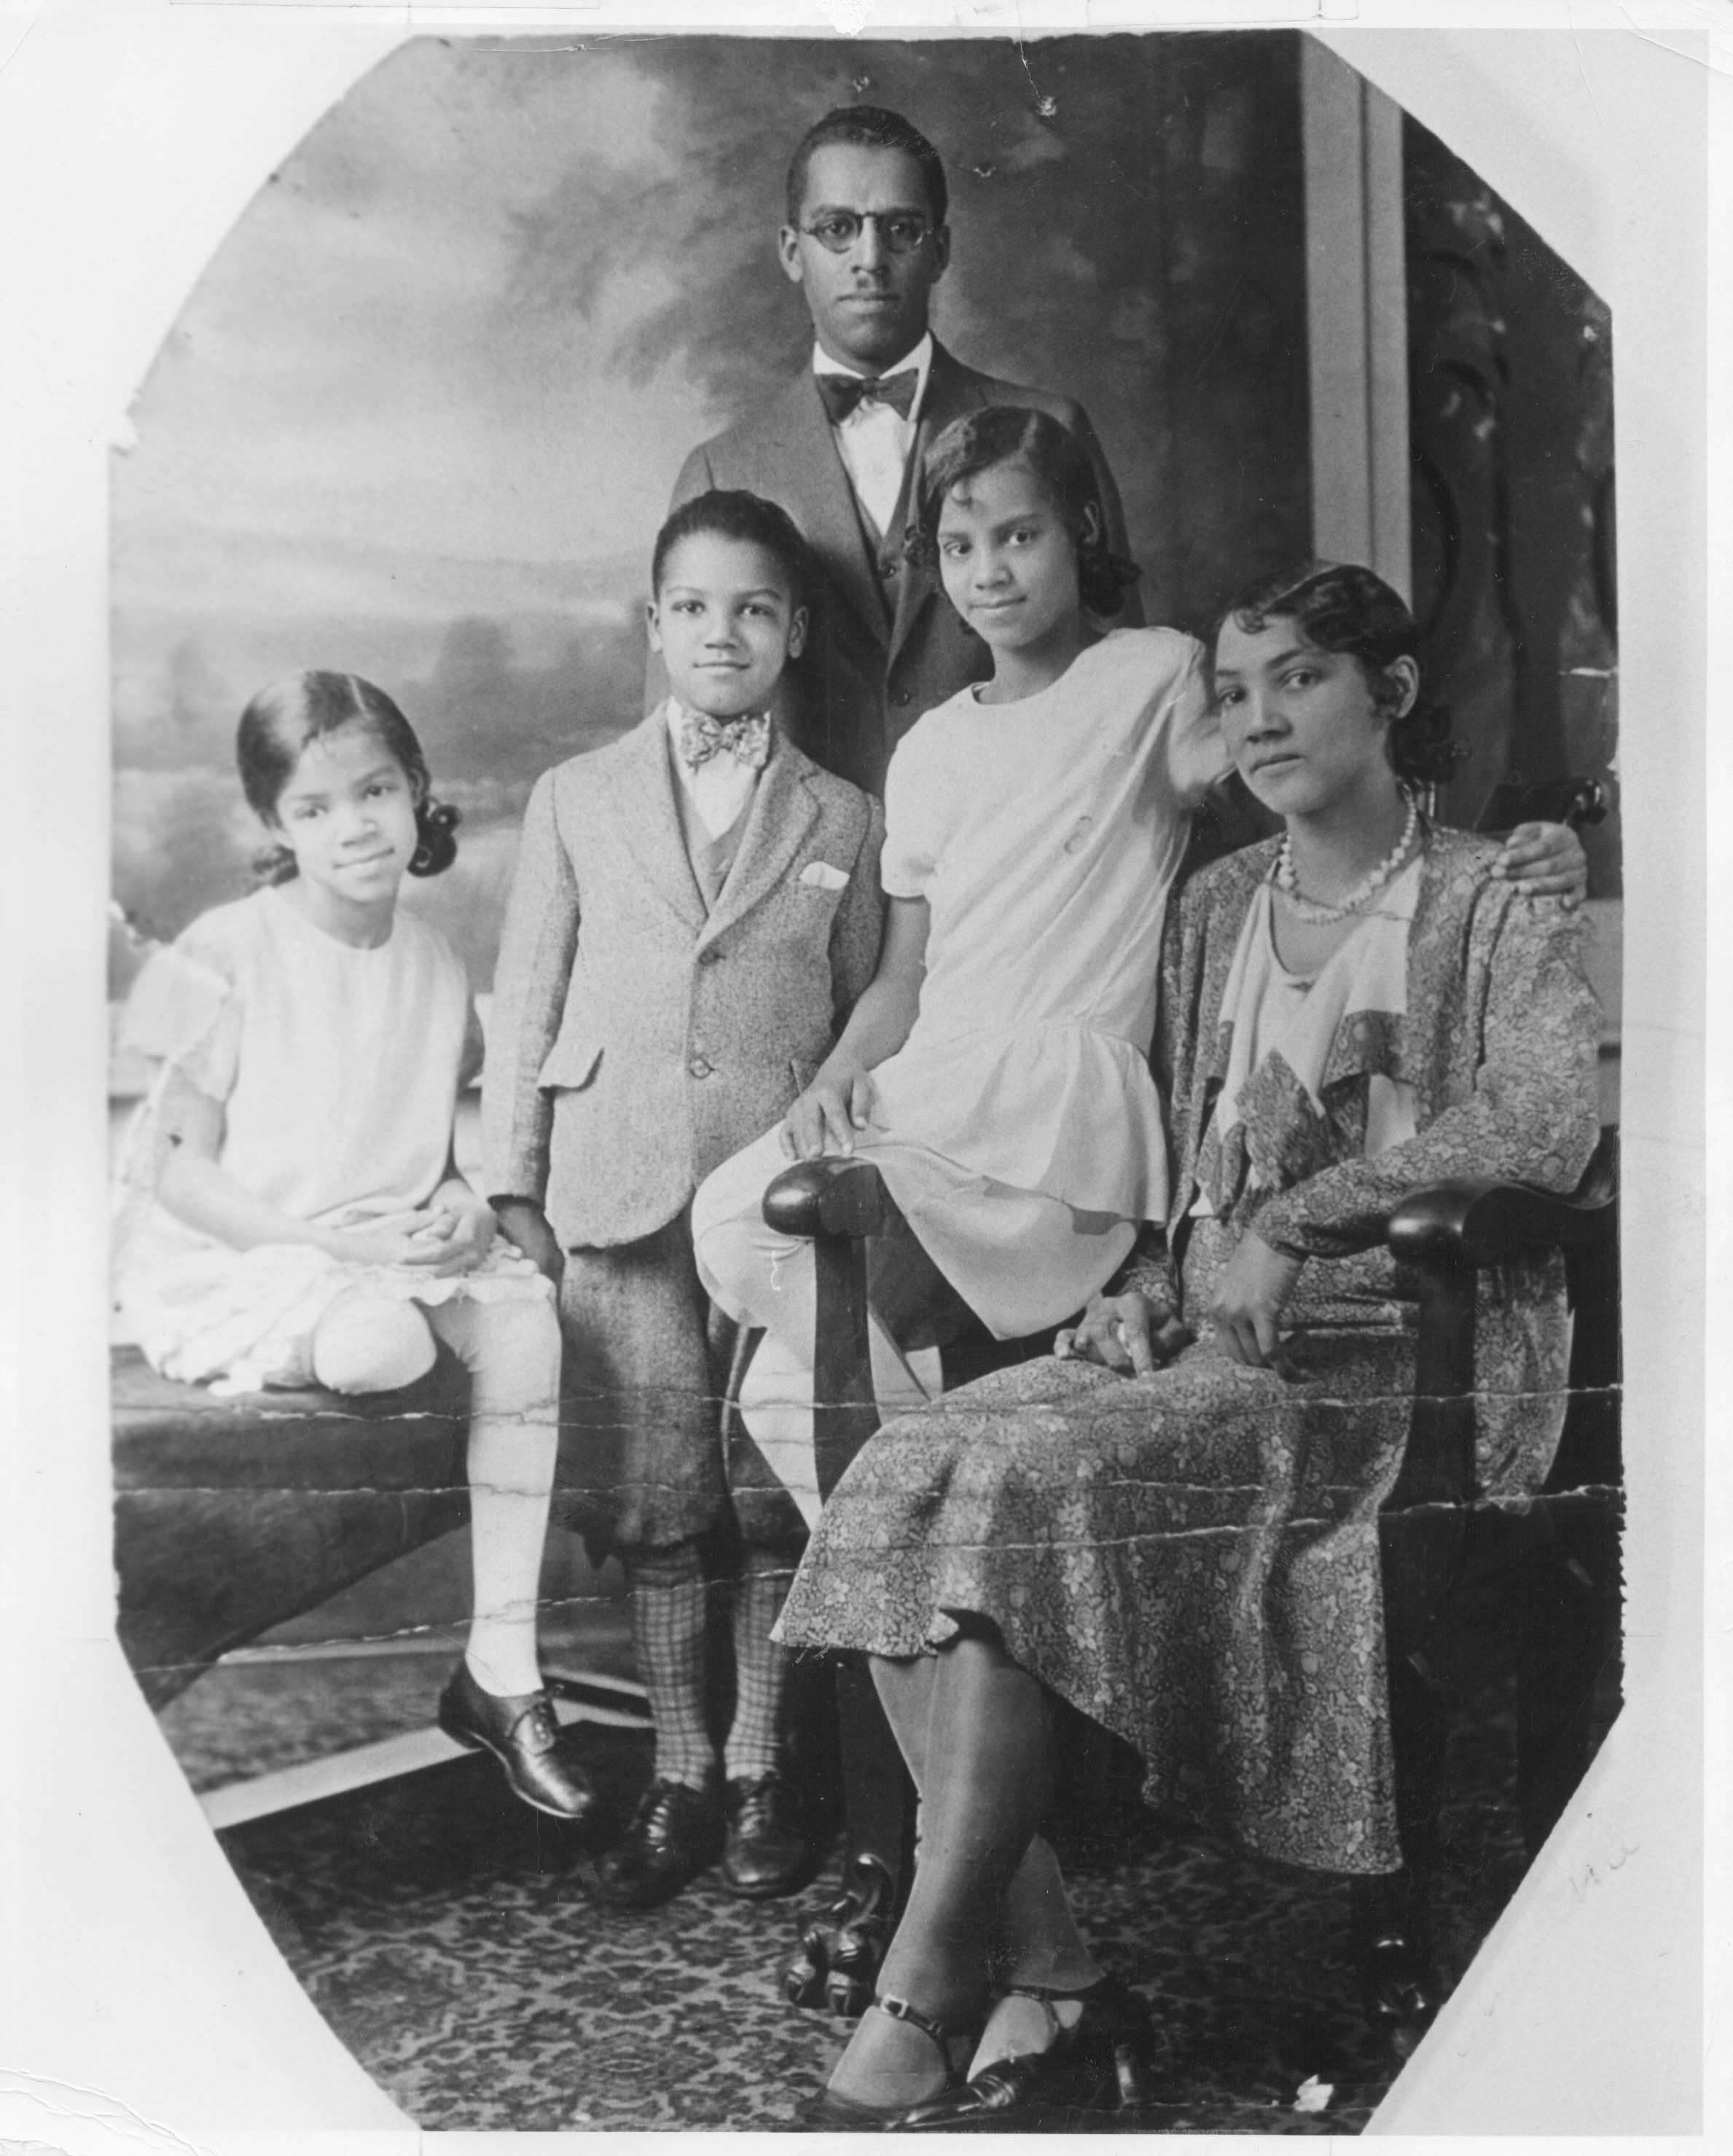 The Young family: Parents Whitney Sr. and Laura, children Eleanor, Whitney, and Arnita